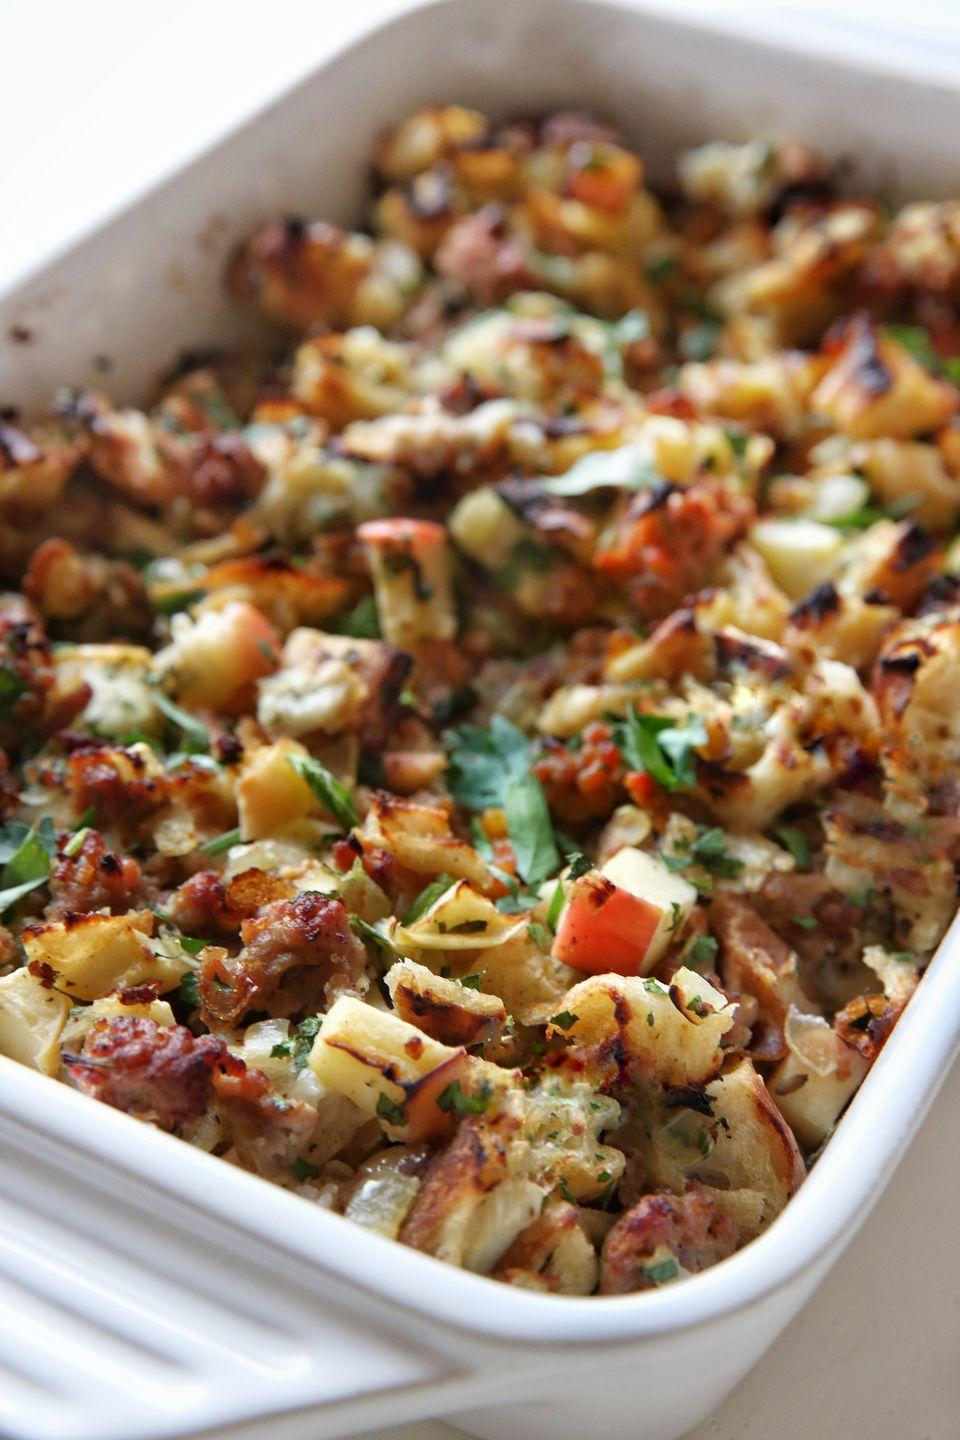 """<p>Apples lend sweetness to this herb-flecked stuffing made with chewy focaccia bread.</p><p>Get the recipe from <a href=""""https://www.delish.com/cooking/recipe-ideas/recipes/a50180/apple-sausage-focaccia-stuffing-recipe/"""" rel=""""nofollow noopener"""" target=""""_blank"""" data-ylk=""""slk:Delish"""" class=""""link rapid-noclick-resp"""">Delish</a>.</p>"""